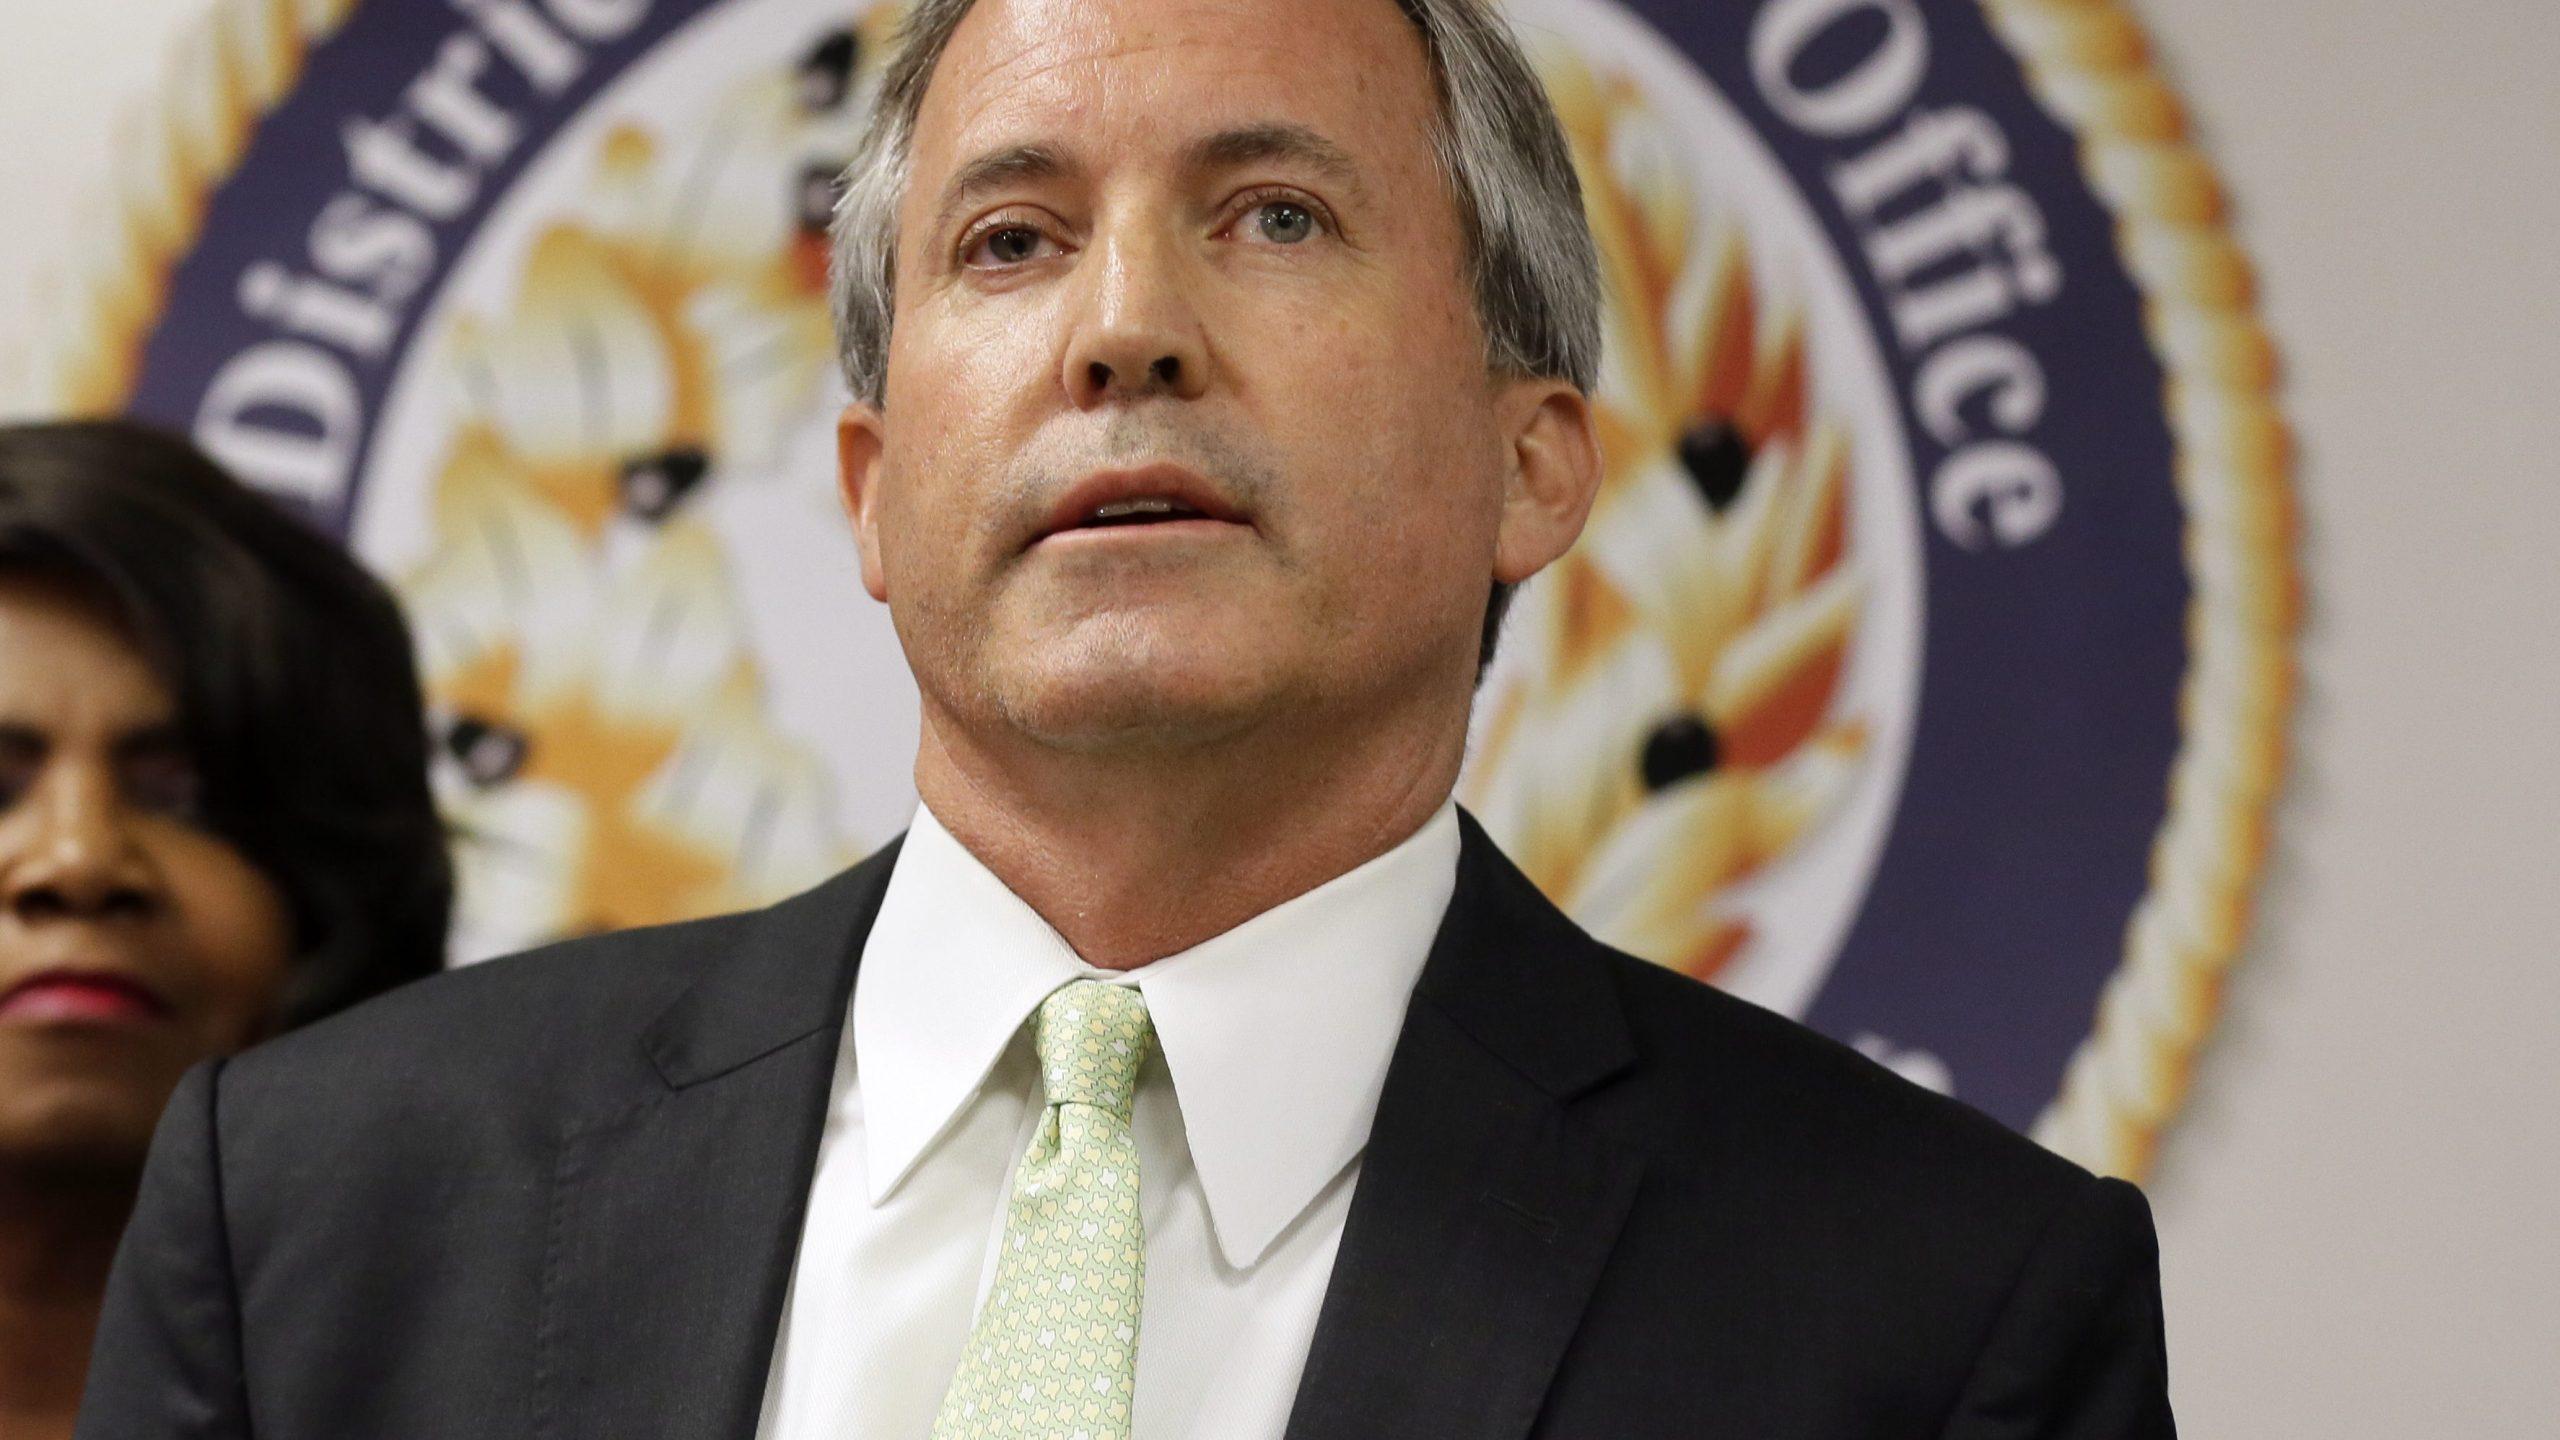 State Bar investigating AG Ken Paxton for misconduct over election lawsuit to protect Trump